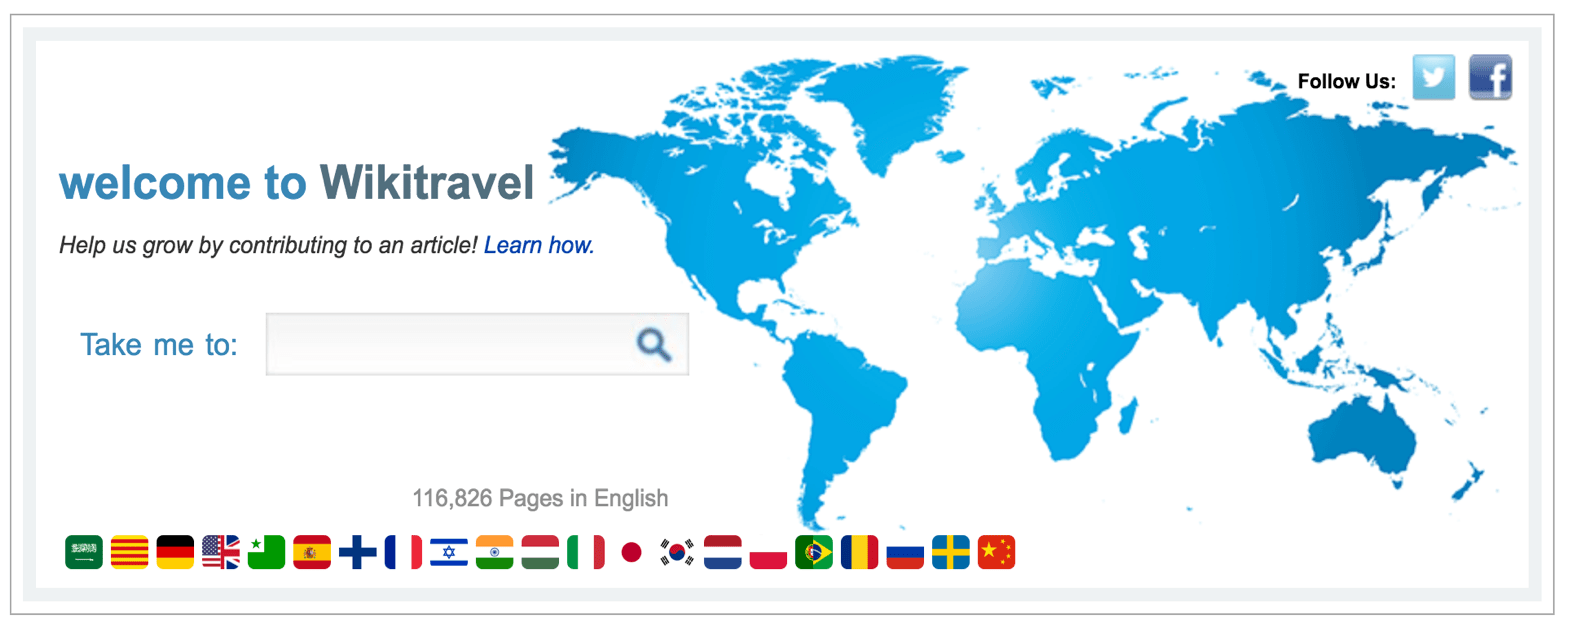 wiki travel for research for your trip